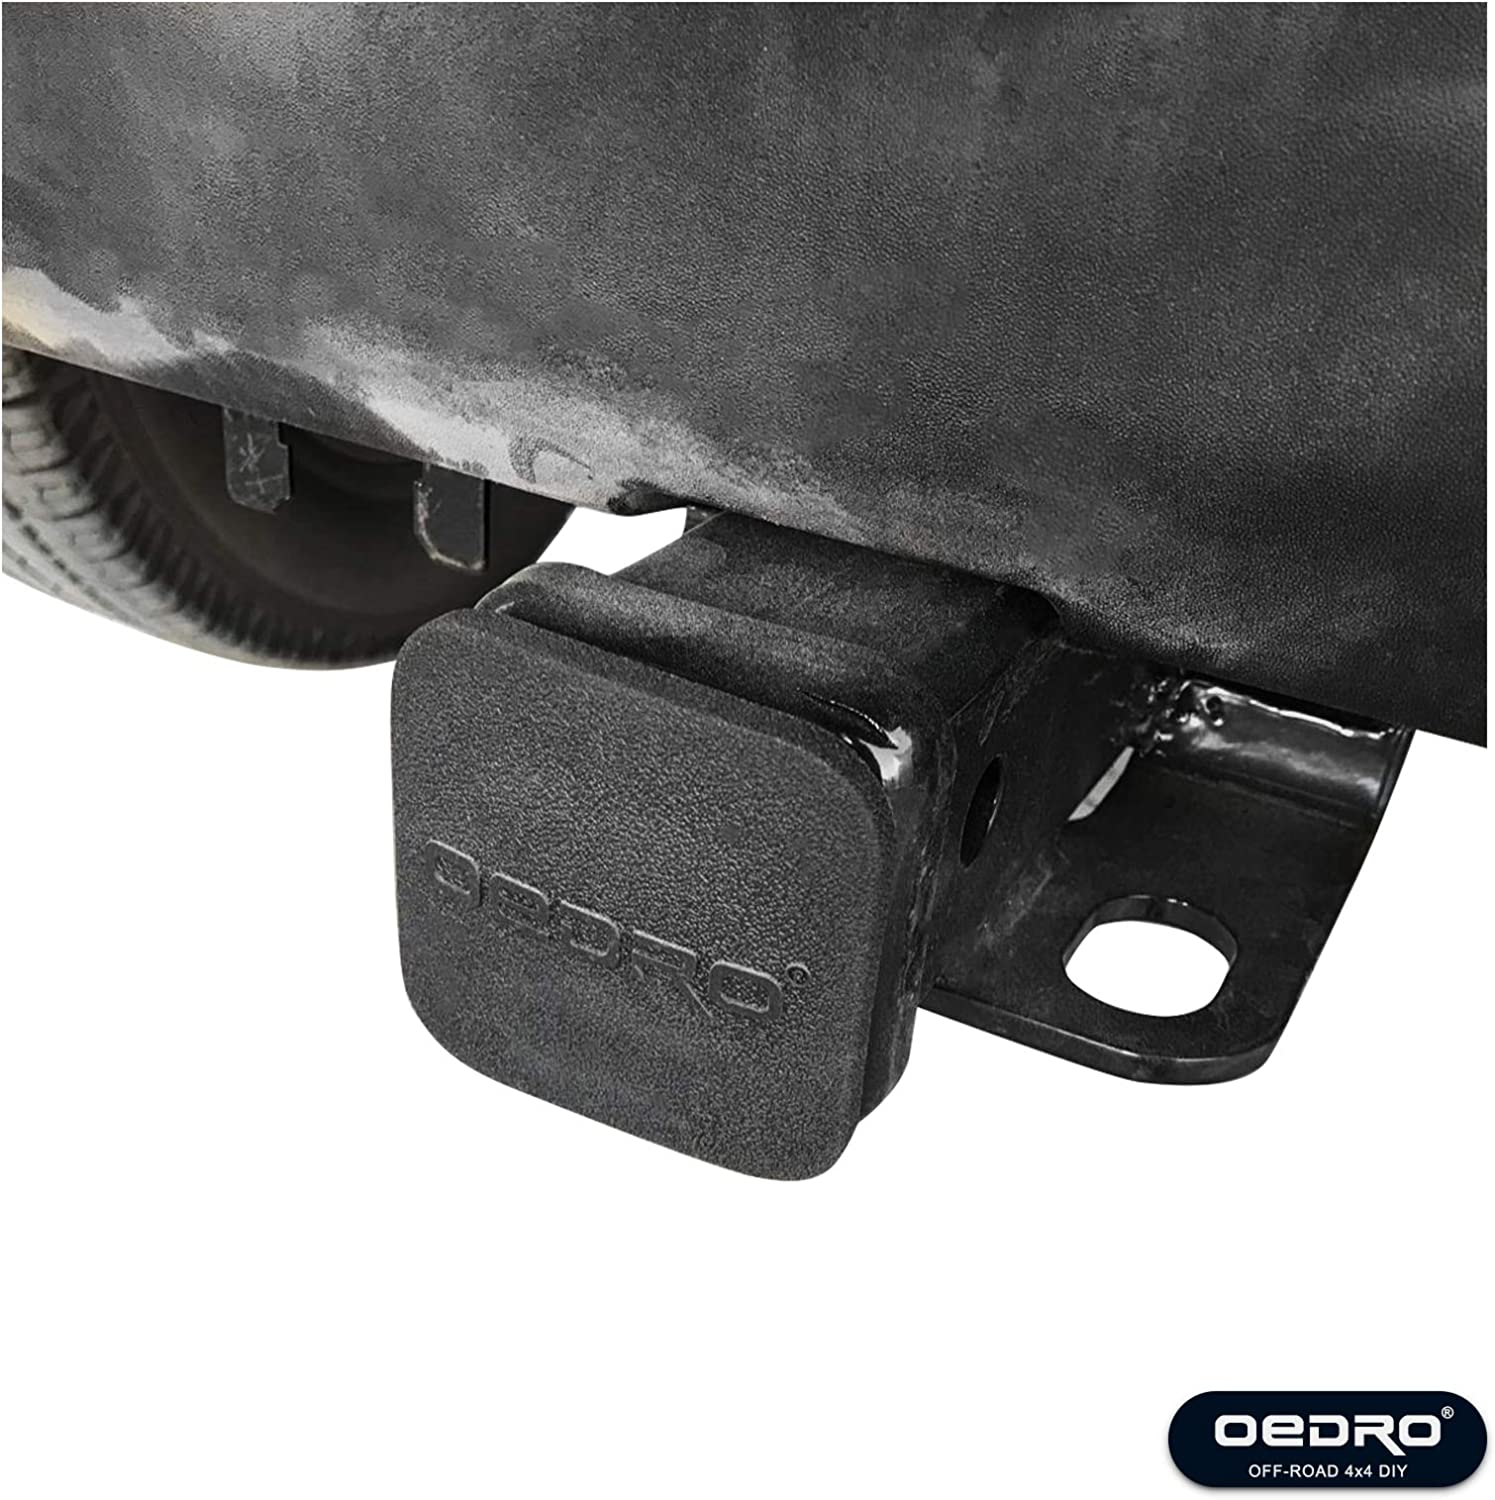 Hitch Cover included OEDRO 2 inch Rear Receiver Hitch Class 3 Hitch /& Cover Kit Towing Combo Compatible for 2007-2018 Jeep Wrangler JK 2 Door /& 4 Door Unlimited Upgraded Tow Trailer Hitch